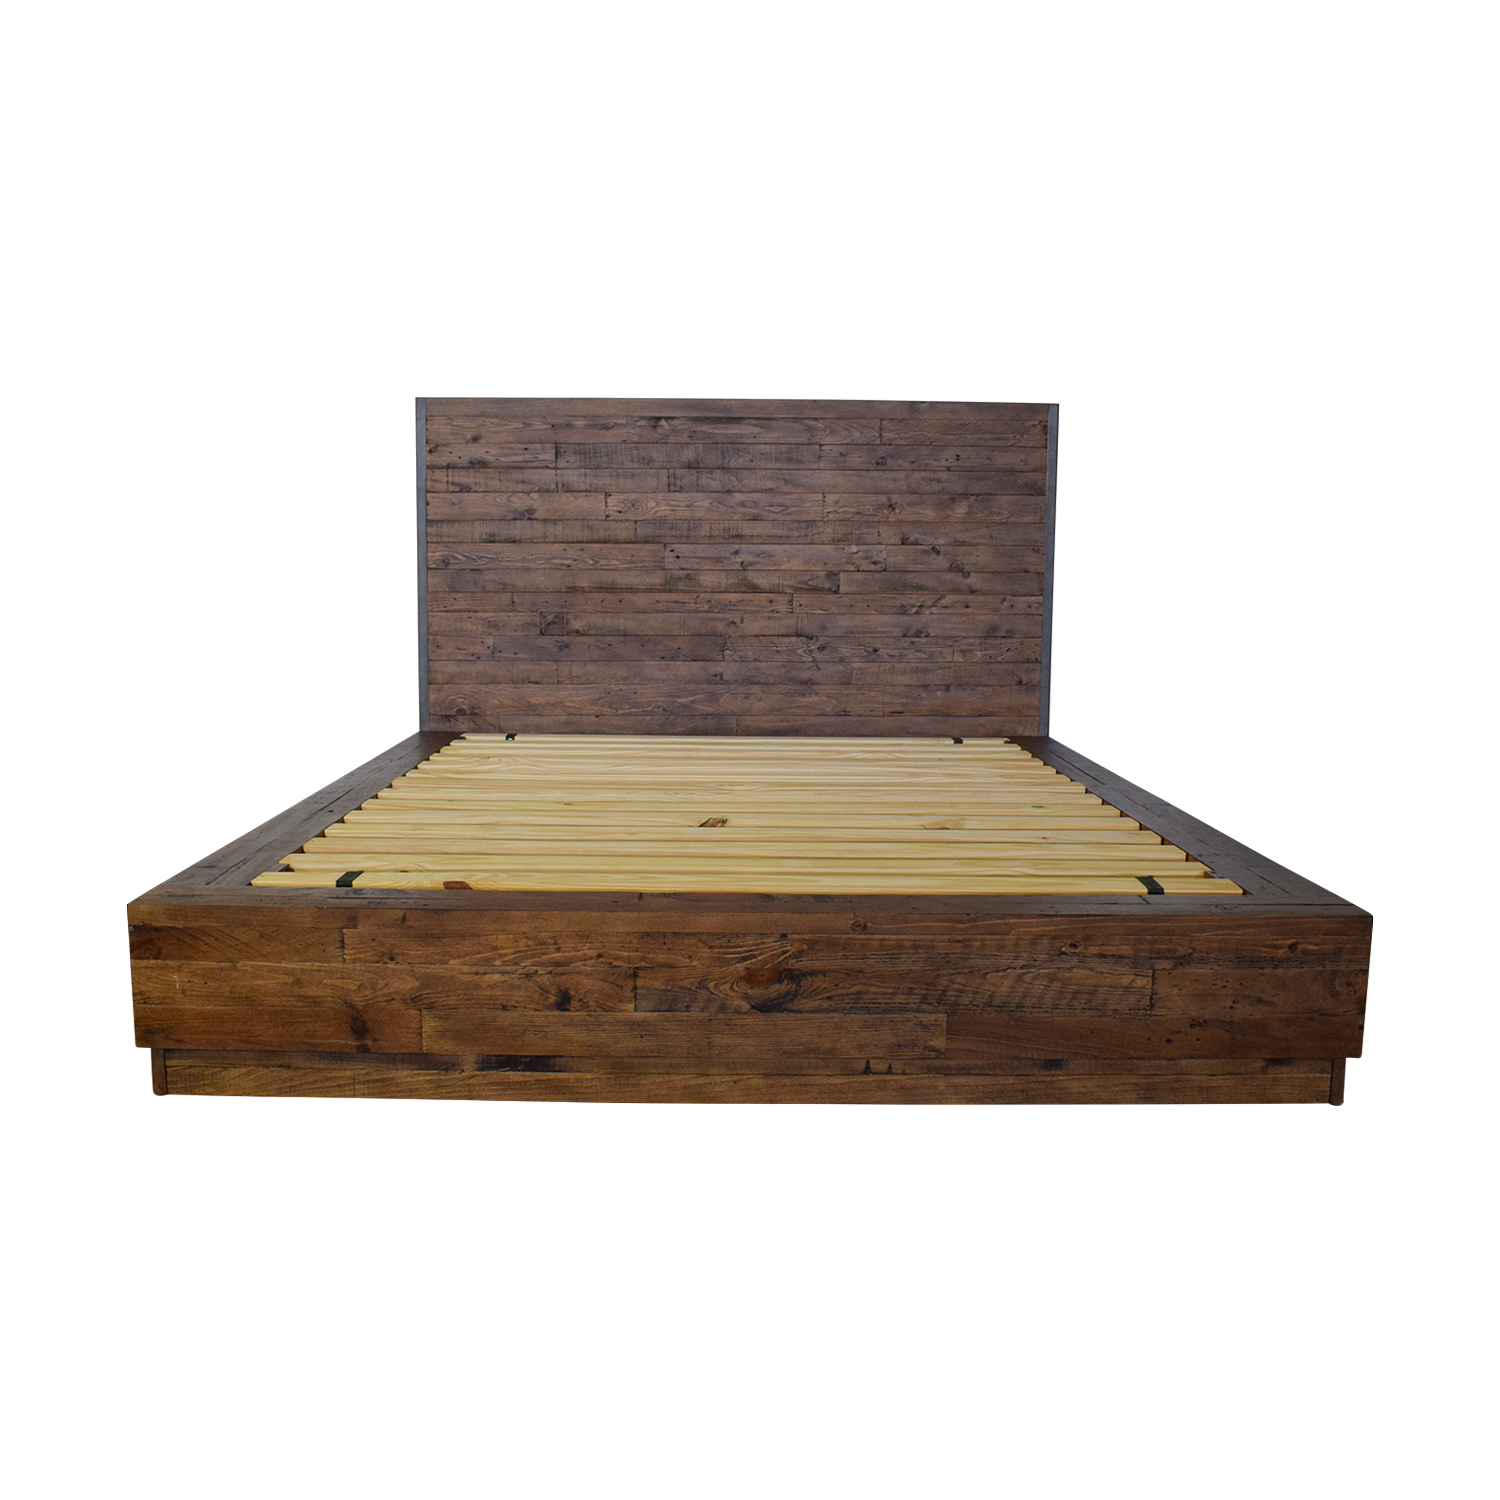 Pottery Barn Big Daddy Rustic Wood Platform Queen Bed Frame sale